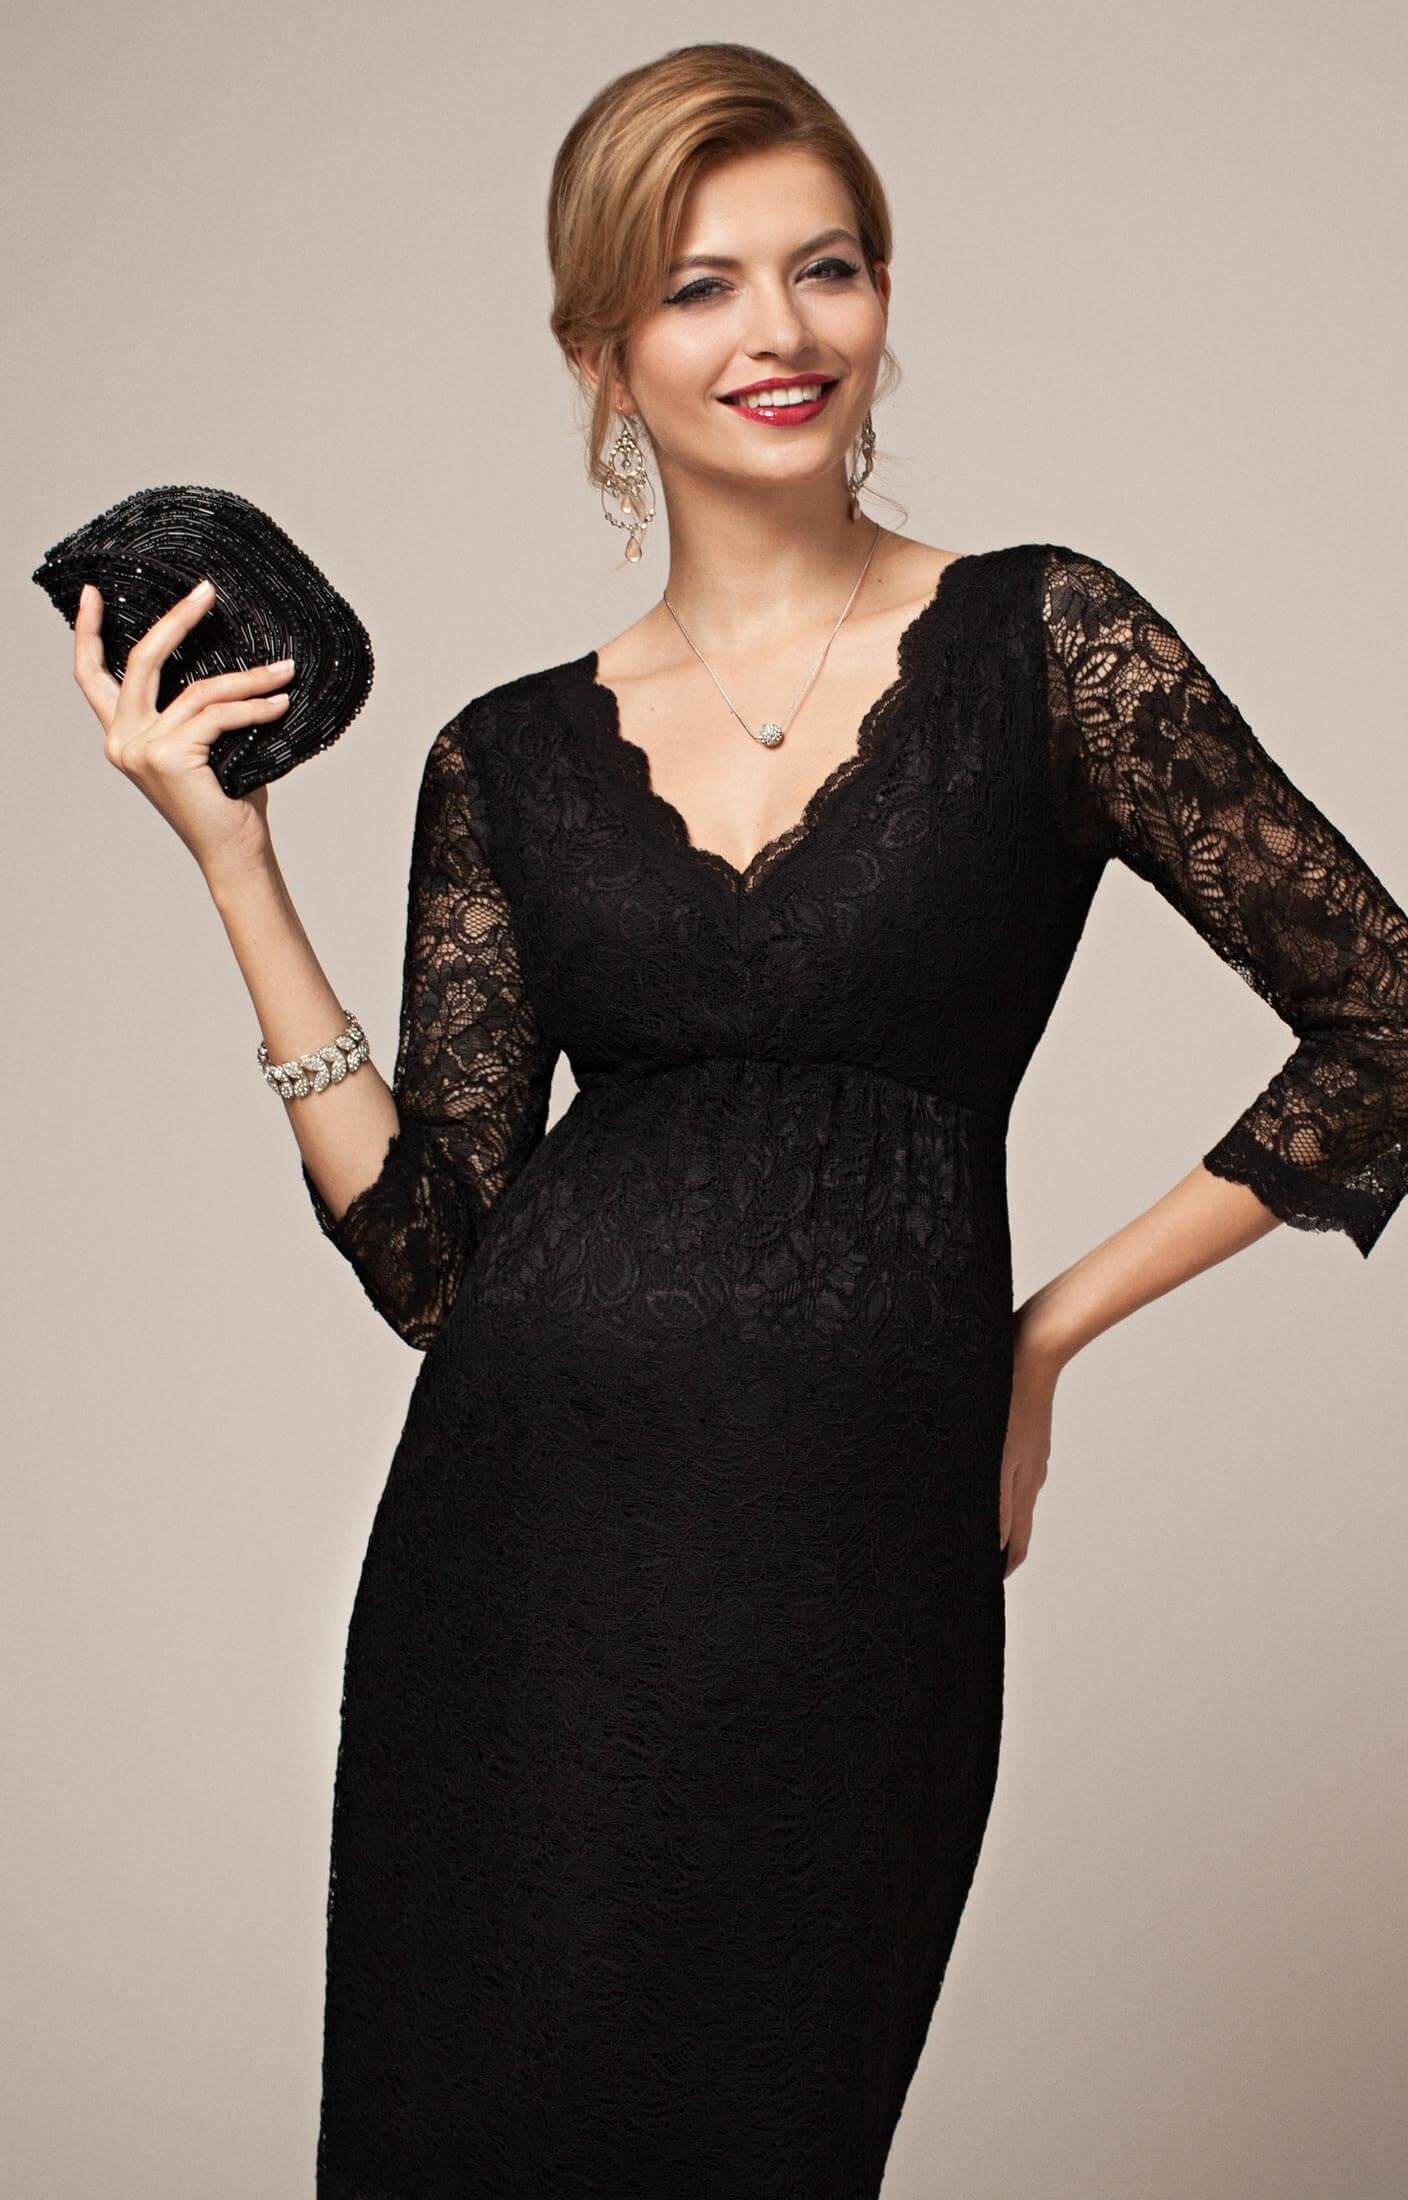 Chloe Lace Maternity Dress Black - Maternity Wedding Dresses ...